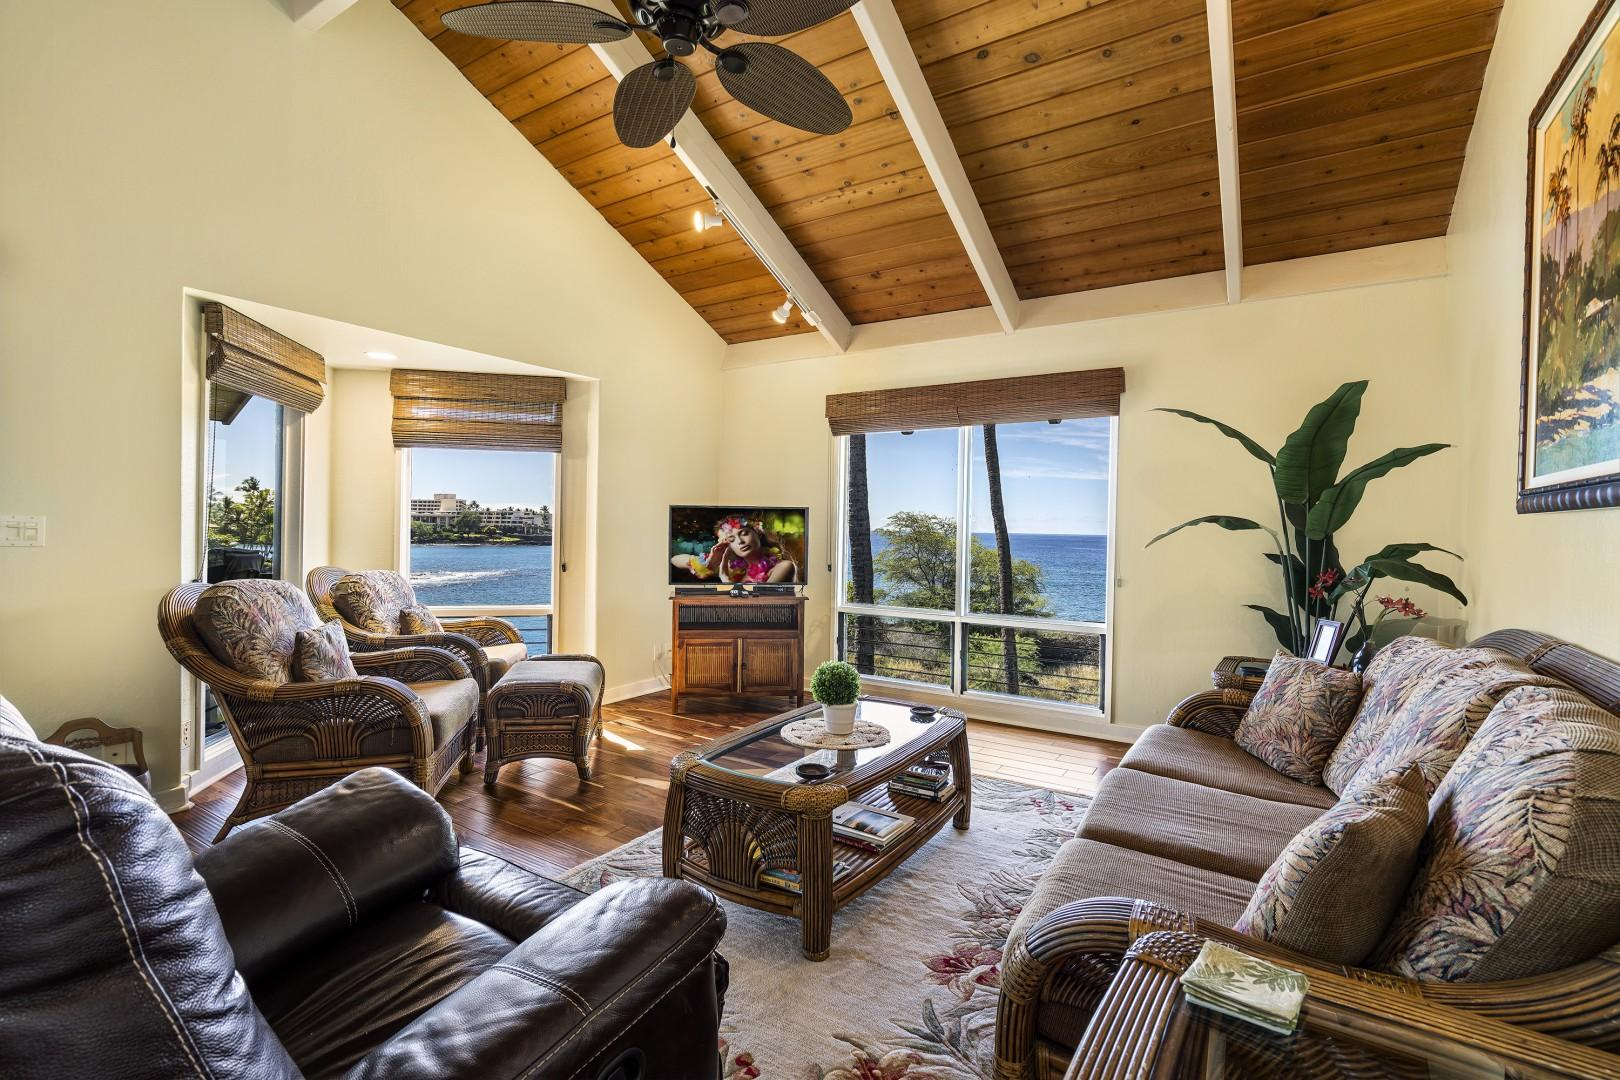 Take your pick between watching the TV or the ocean in the distance